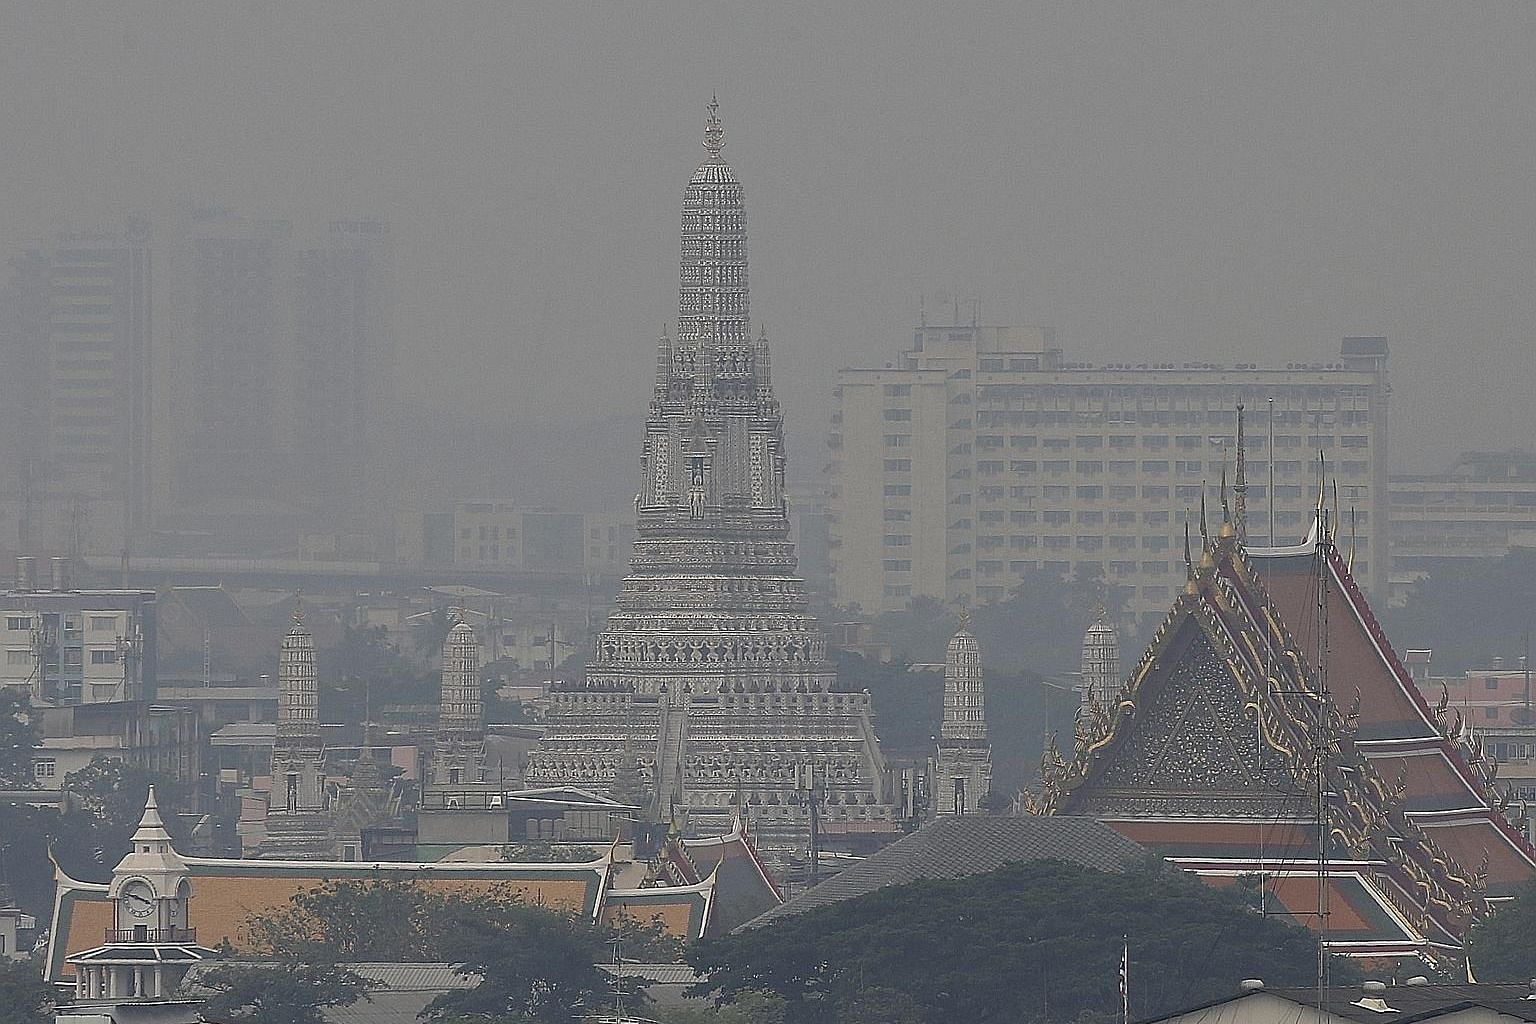 The Air Quality Index in Bangkok remained in the unhealthy range yesterday despite the deployment of water cannon to combat air pollution.